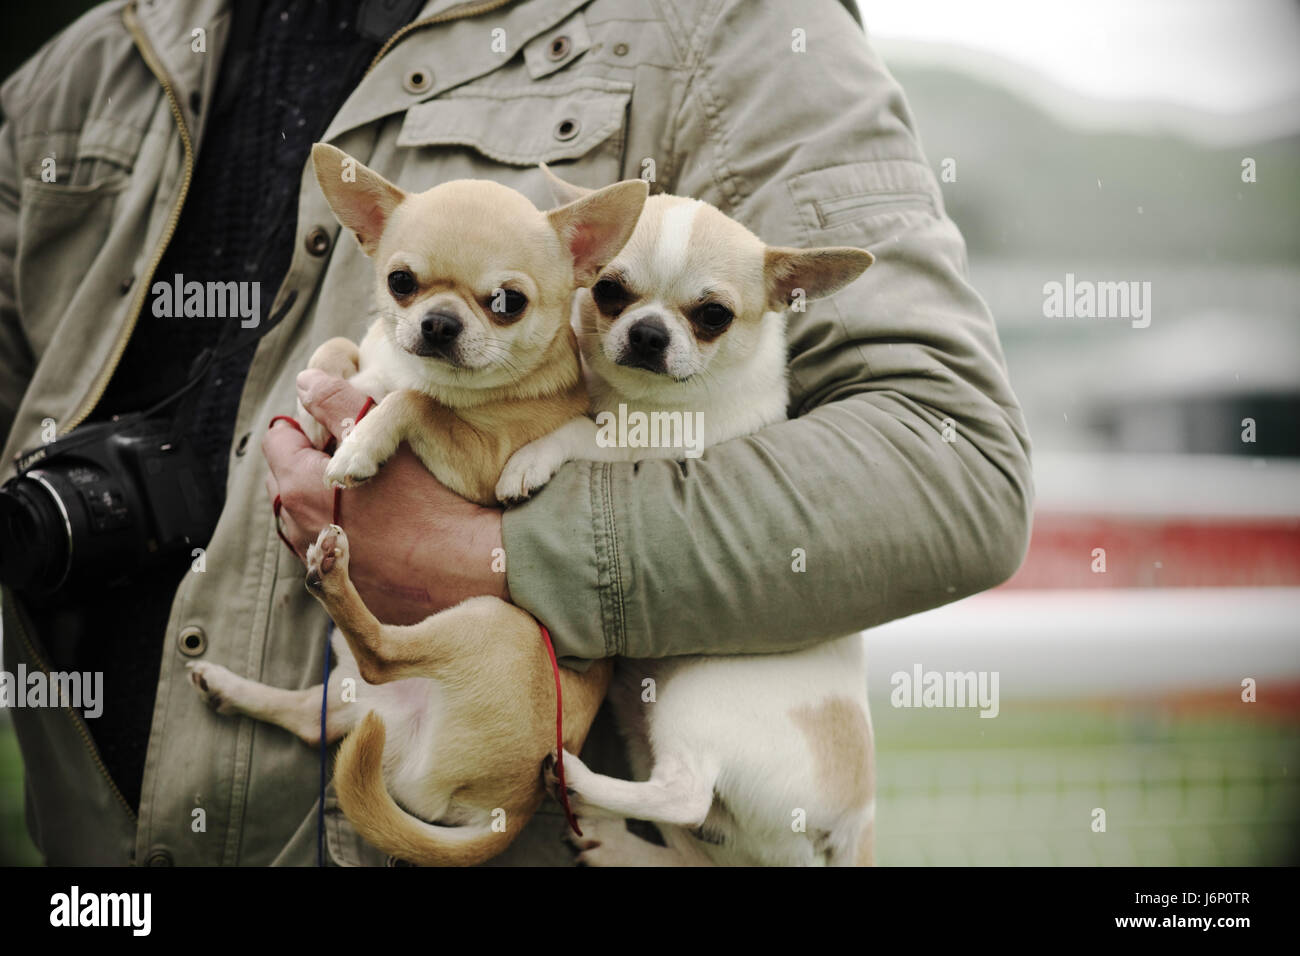 Man carrying two short haired Chihuahua dogs under his arm toy dogs - Stock Image